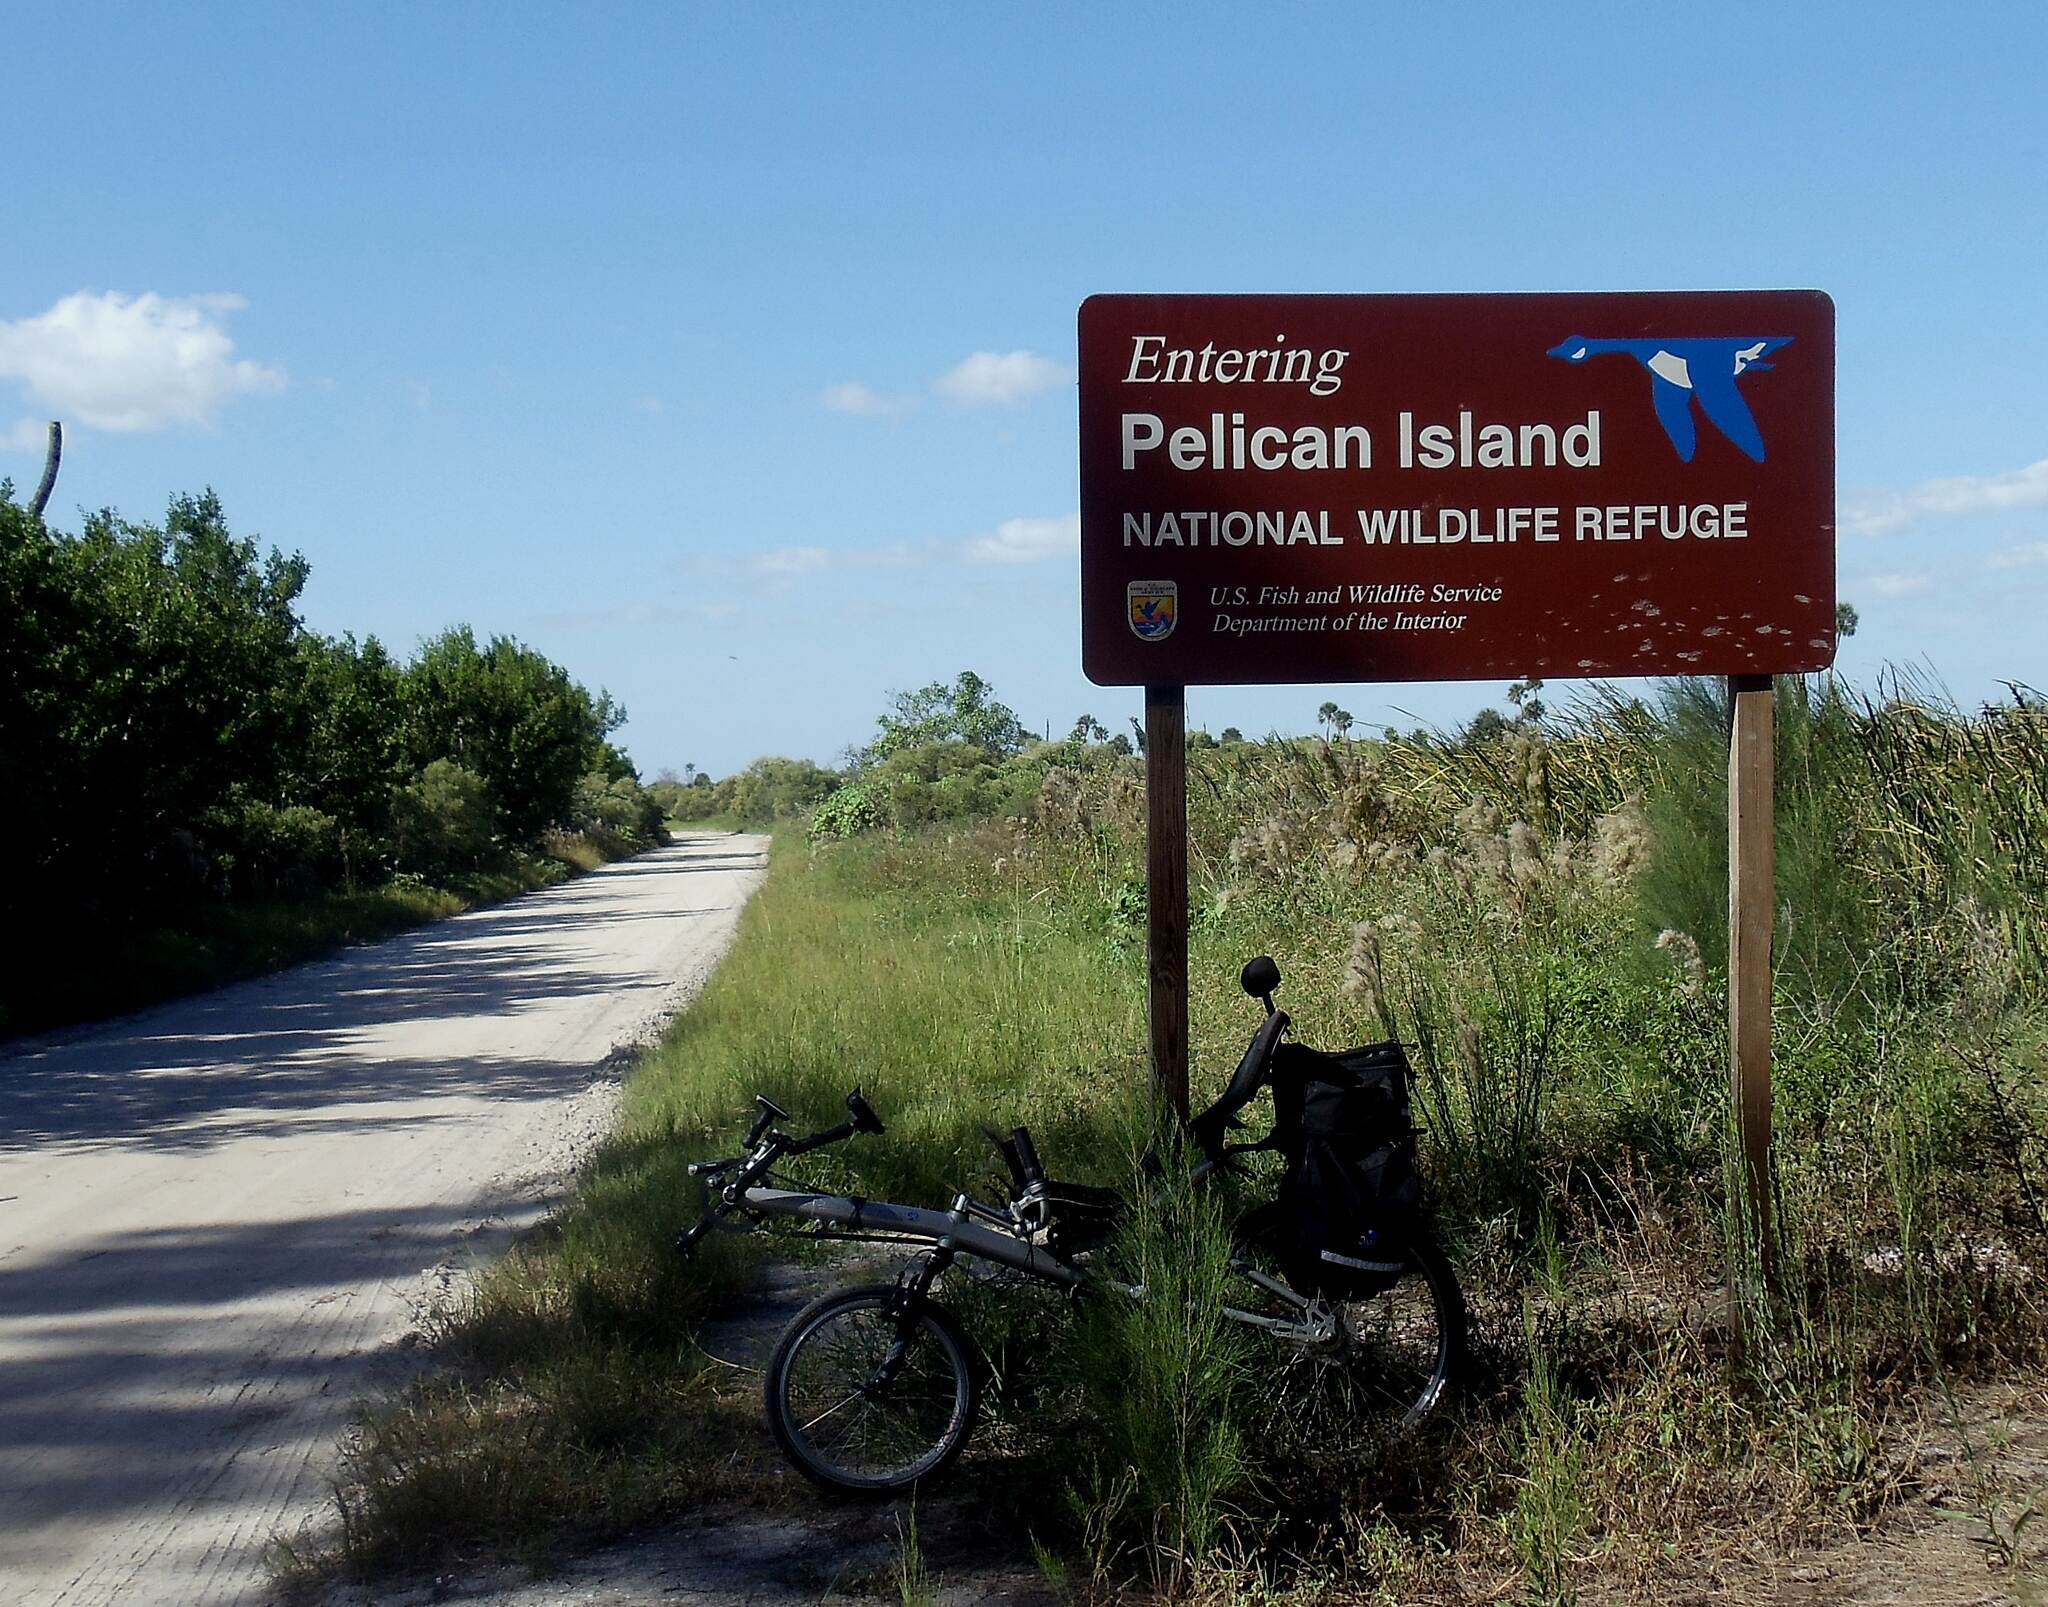 Historic Jungle Trail Pelican Island NWR